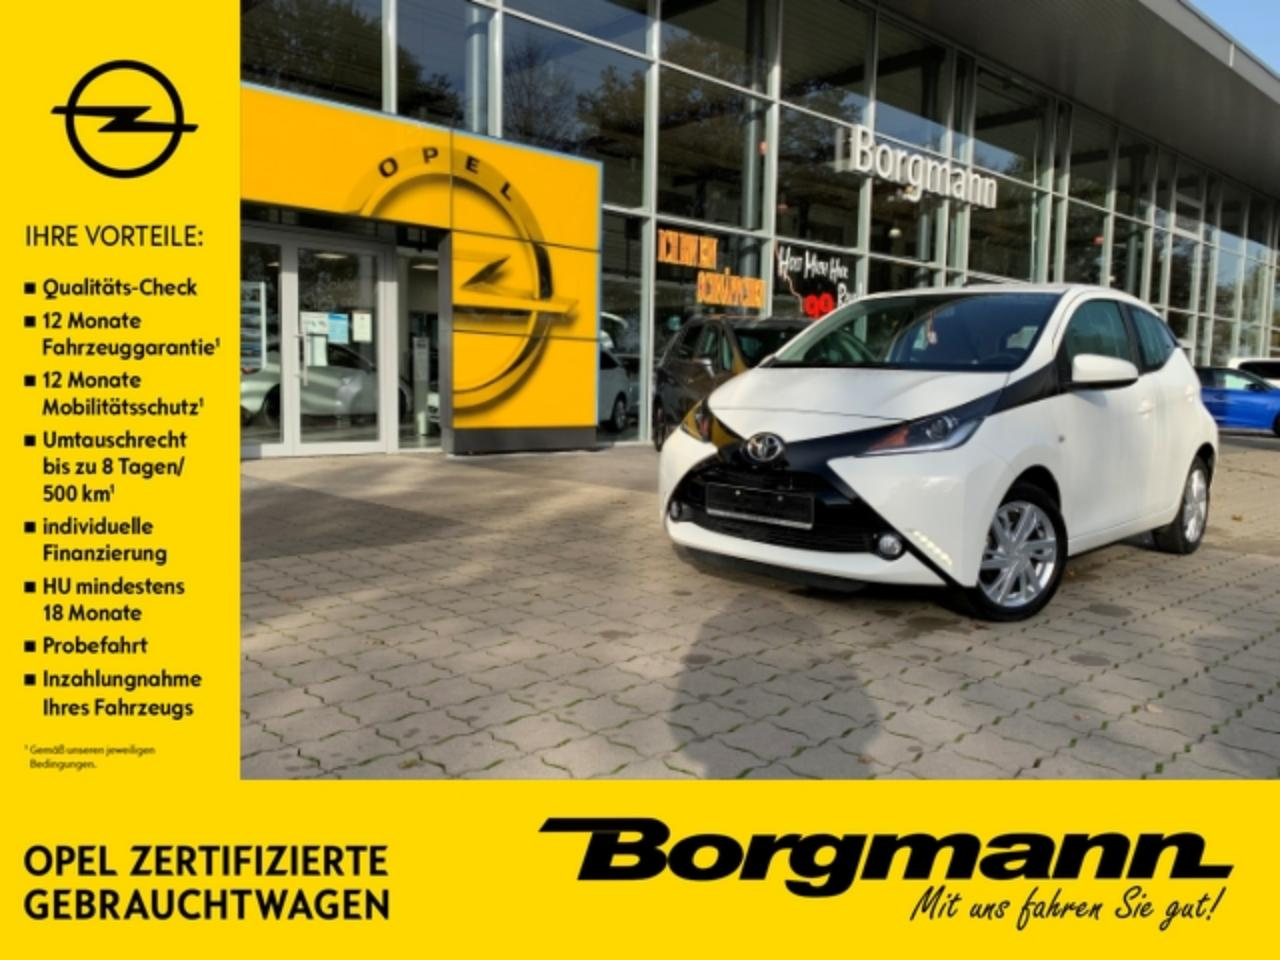 Toyota Aygo touch 1.0 Tagfahrlicht - Bluetooth - MP3 - Radio